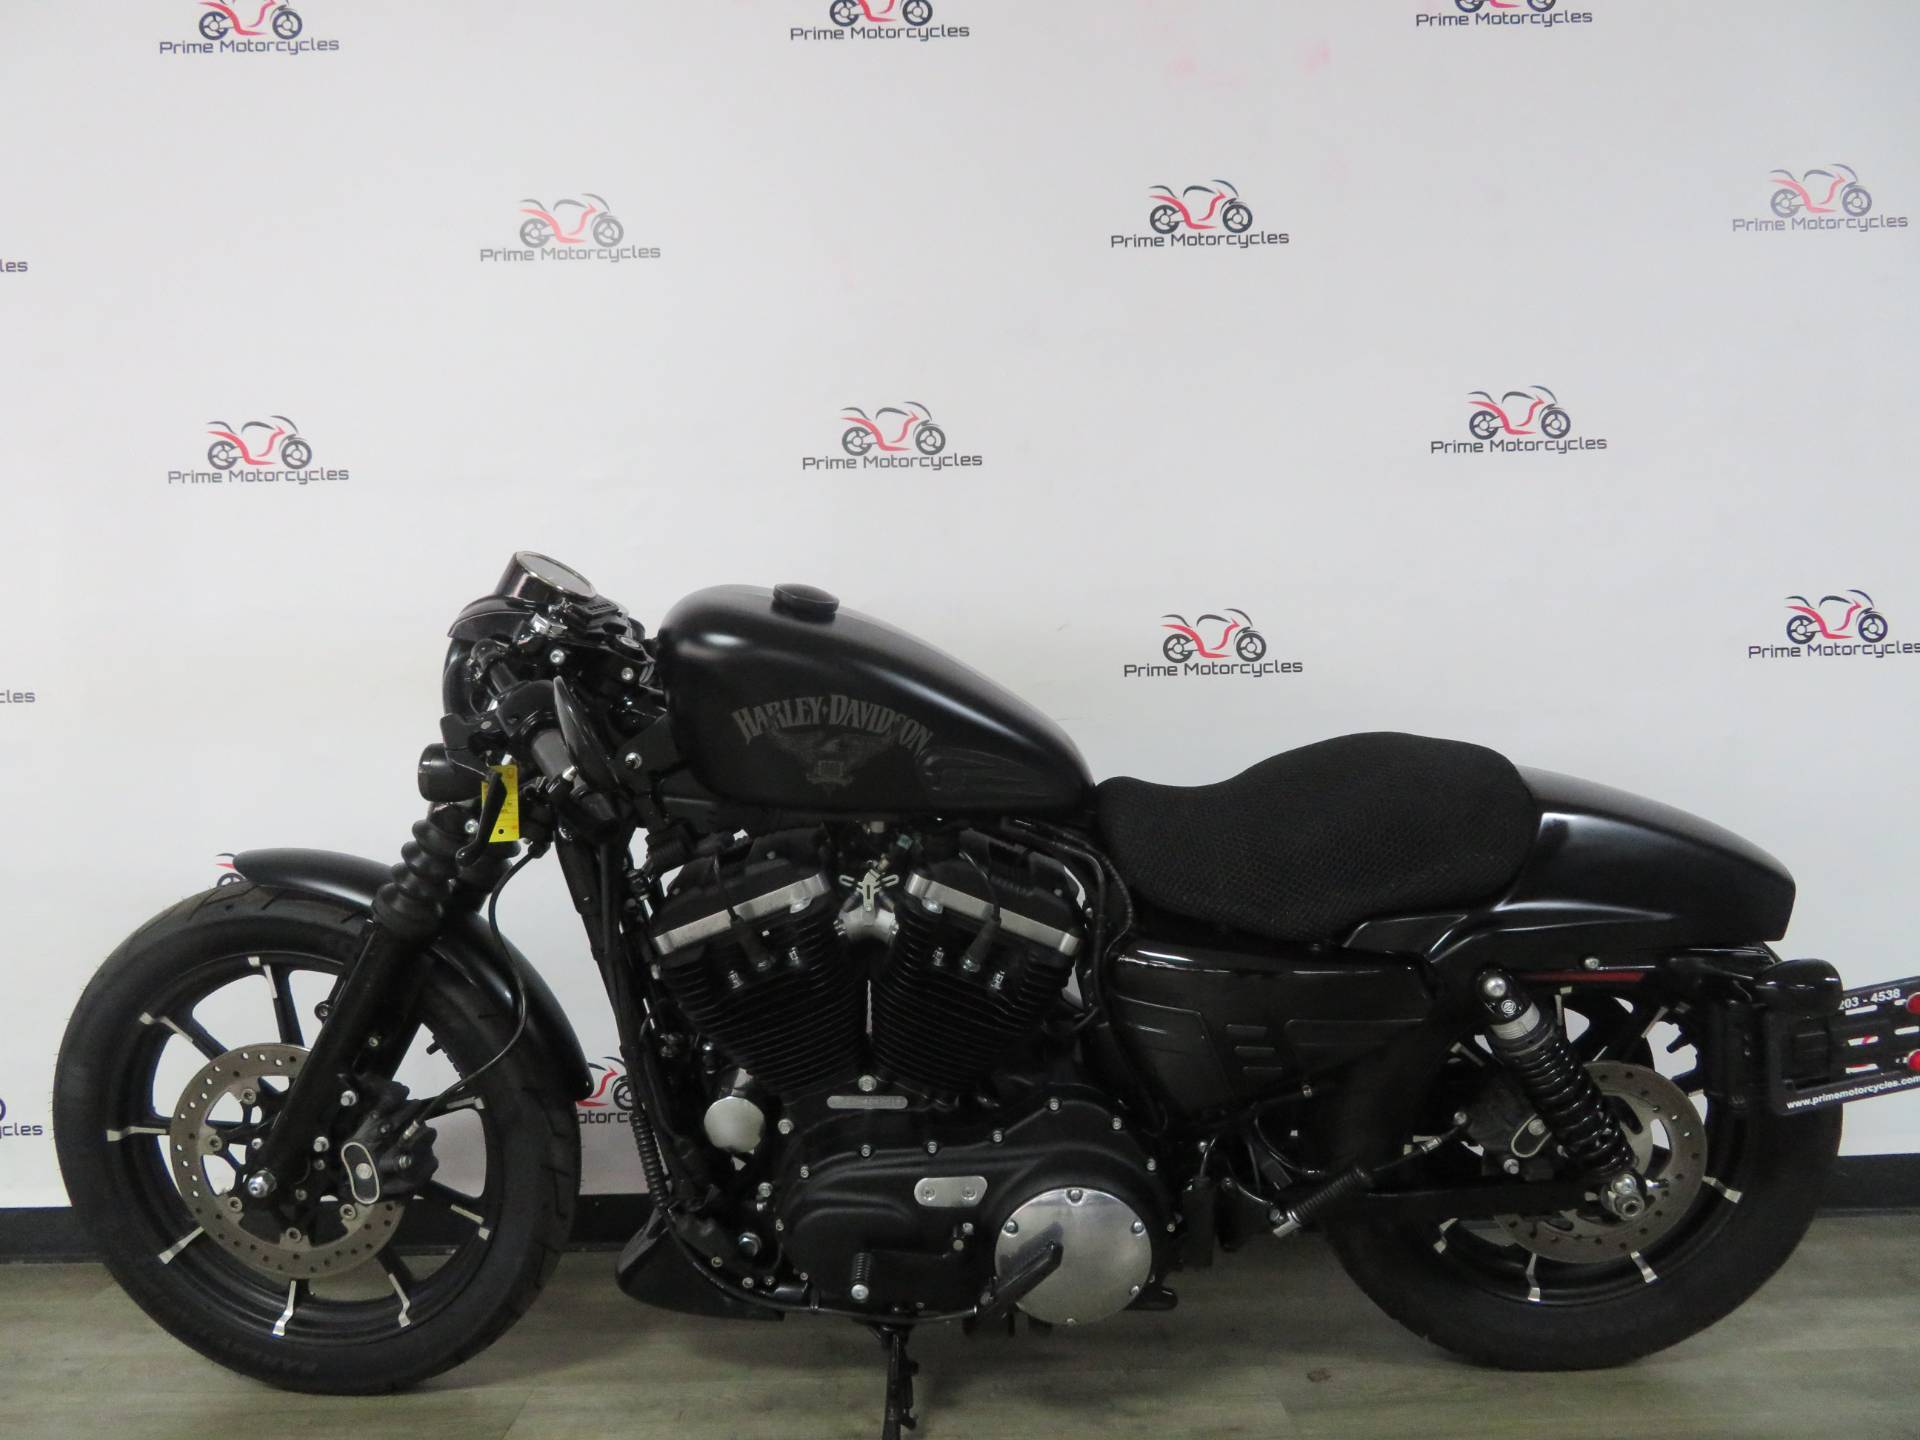 2017 Harley-Davidson Sportster Iron 883 in Sanford, Florida - Photo 1